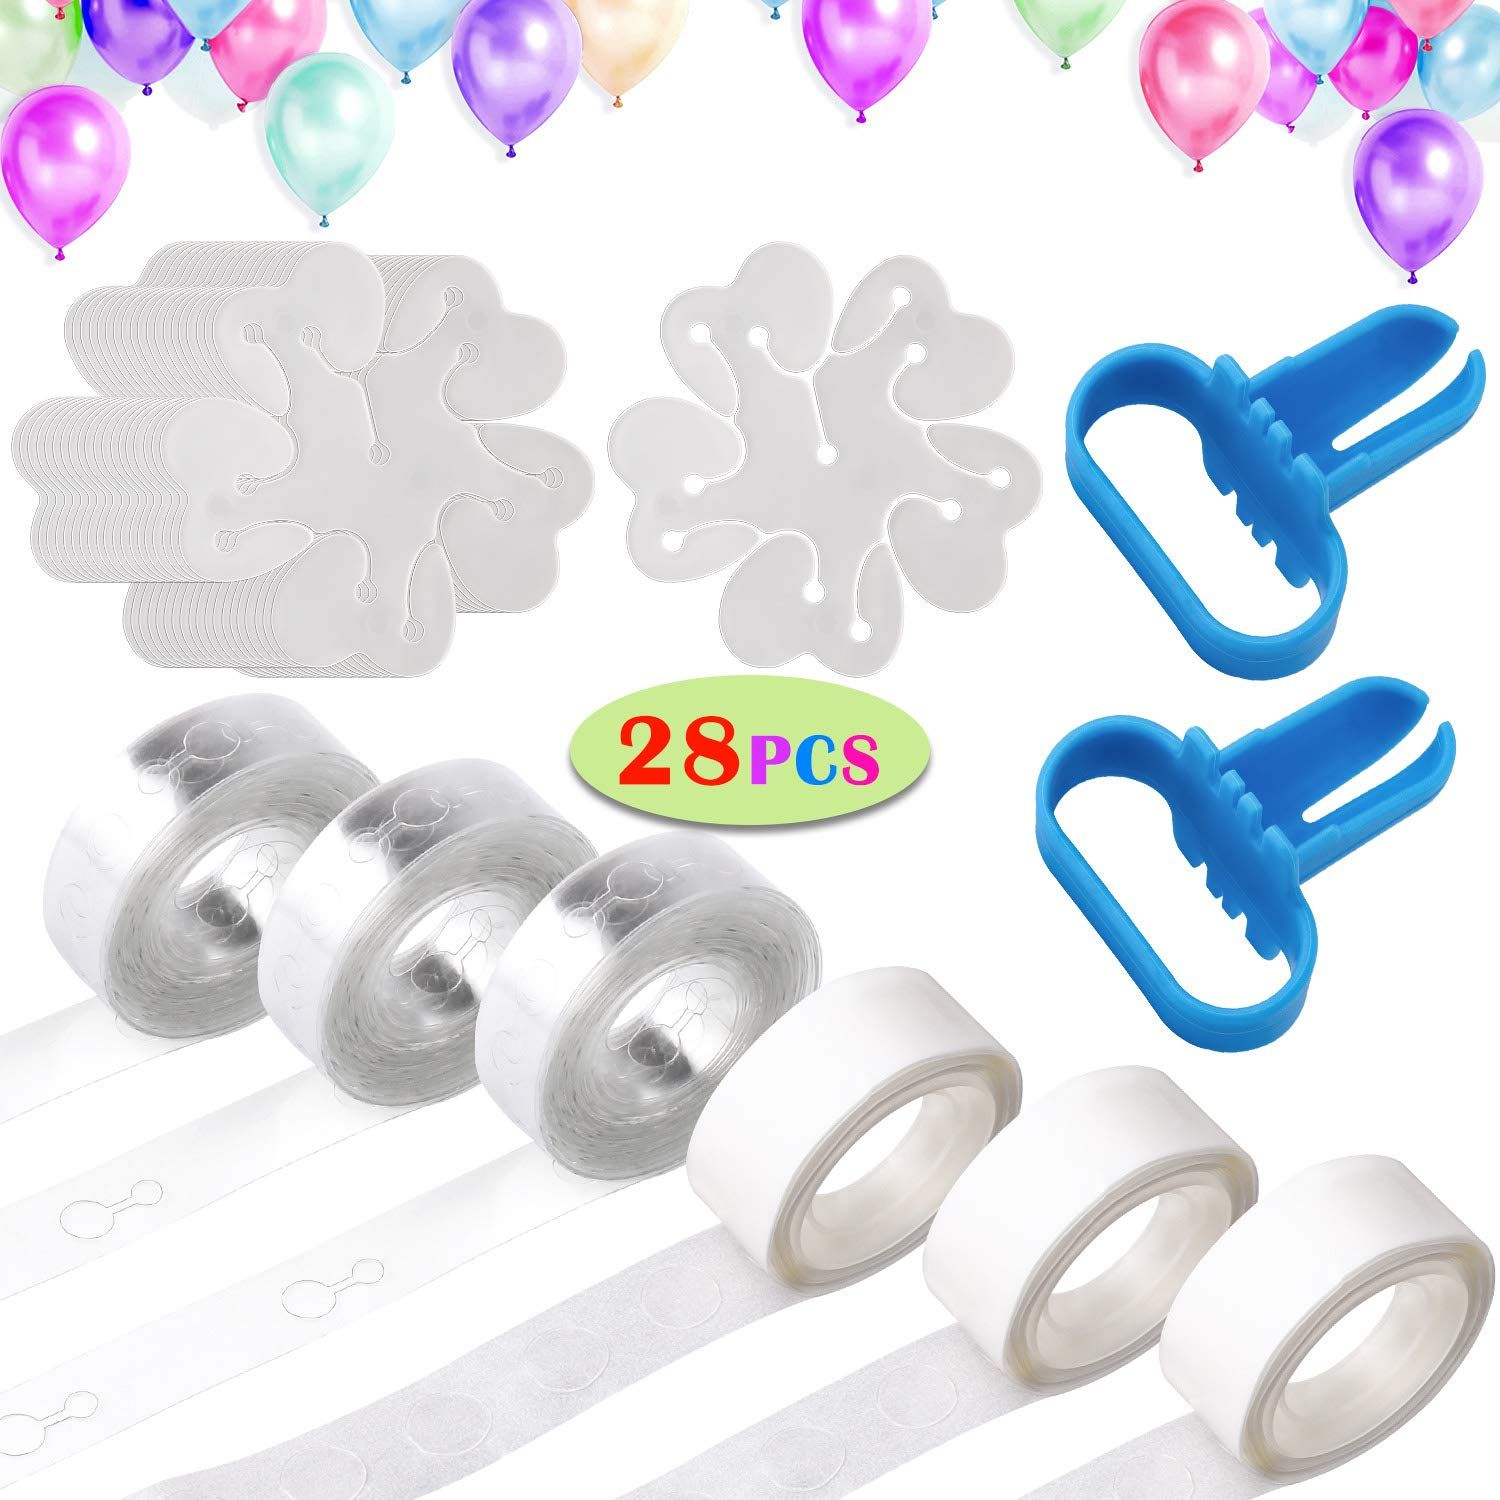 Tinabless Balloon Decorating Strip Kit, Balloon Garland Kit for Arch Garland with 48 Ft Balloon Tape Strip, 2 Pcs Tying Tool, 300 Dot Glue, 20 Flower Clip for Birthday, Wedding, Party Decorations * Click on the image for additional details. (This is an affiliate link)